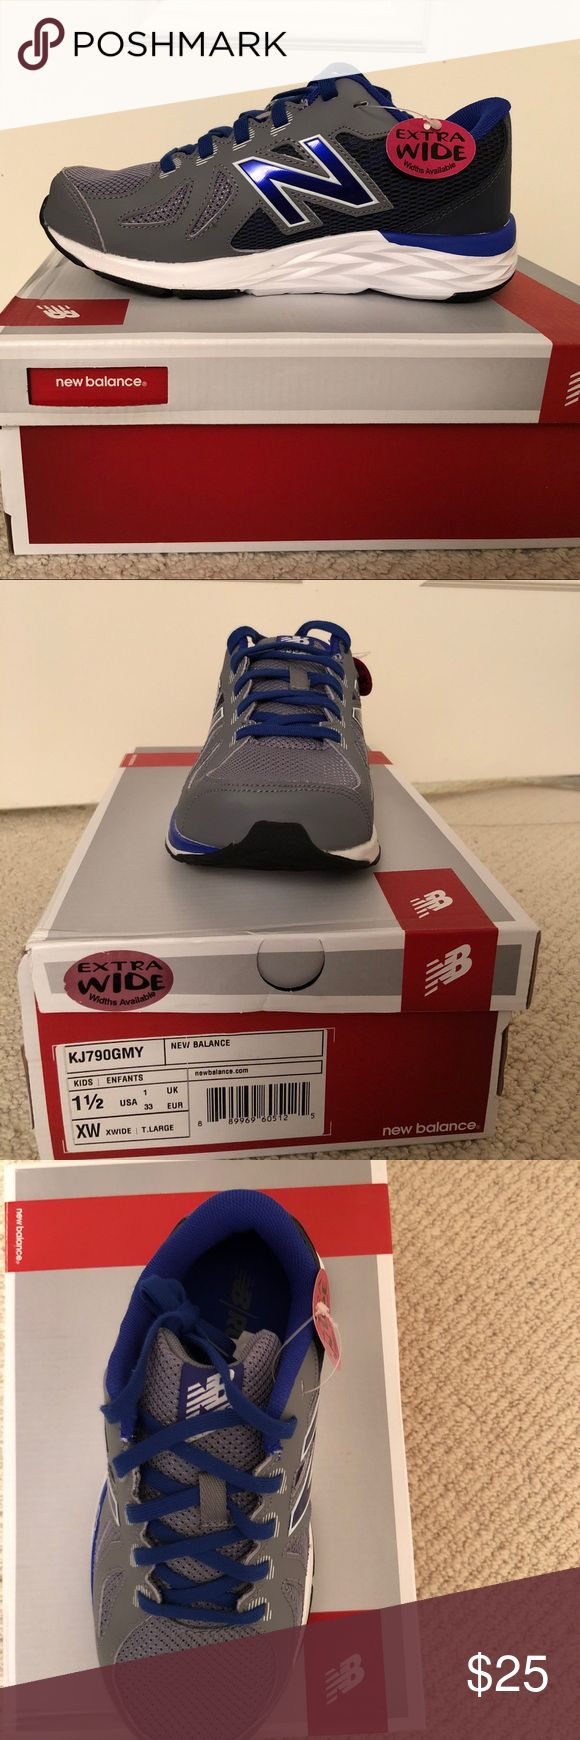 New Balance kids 790v6 sneakers New in box New Balance kids 790v6 sneakers. Size 1 1/2 XW New Balance Shoes Athletic Shoes